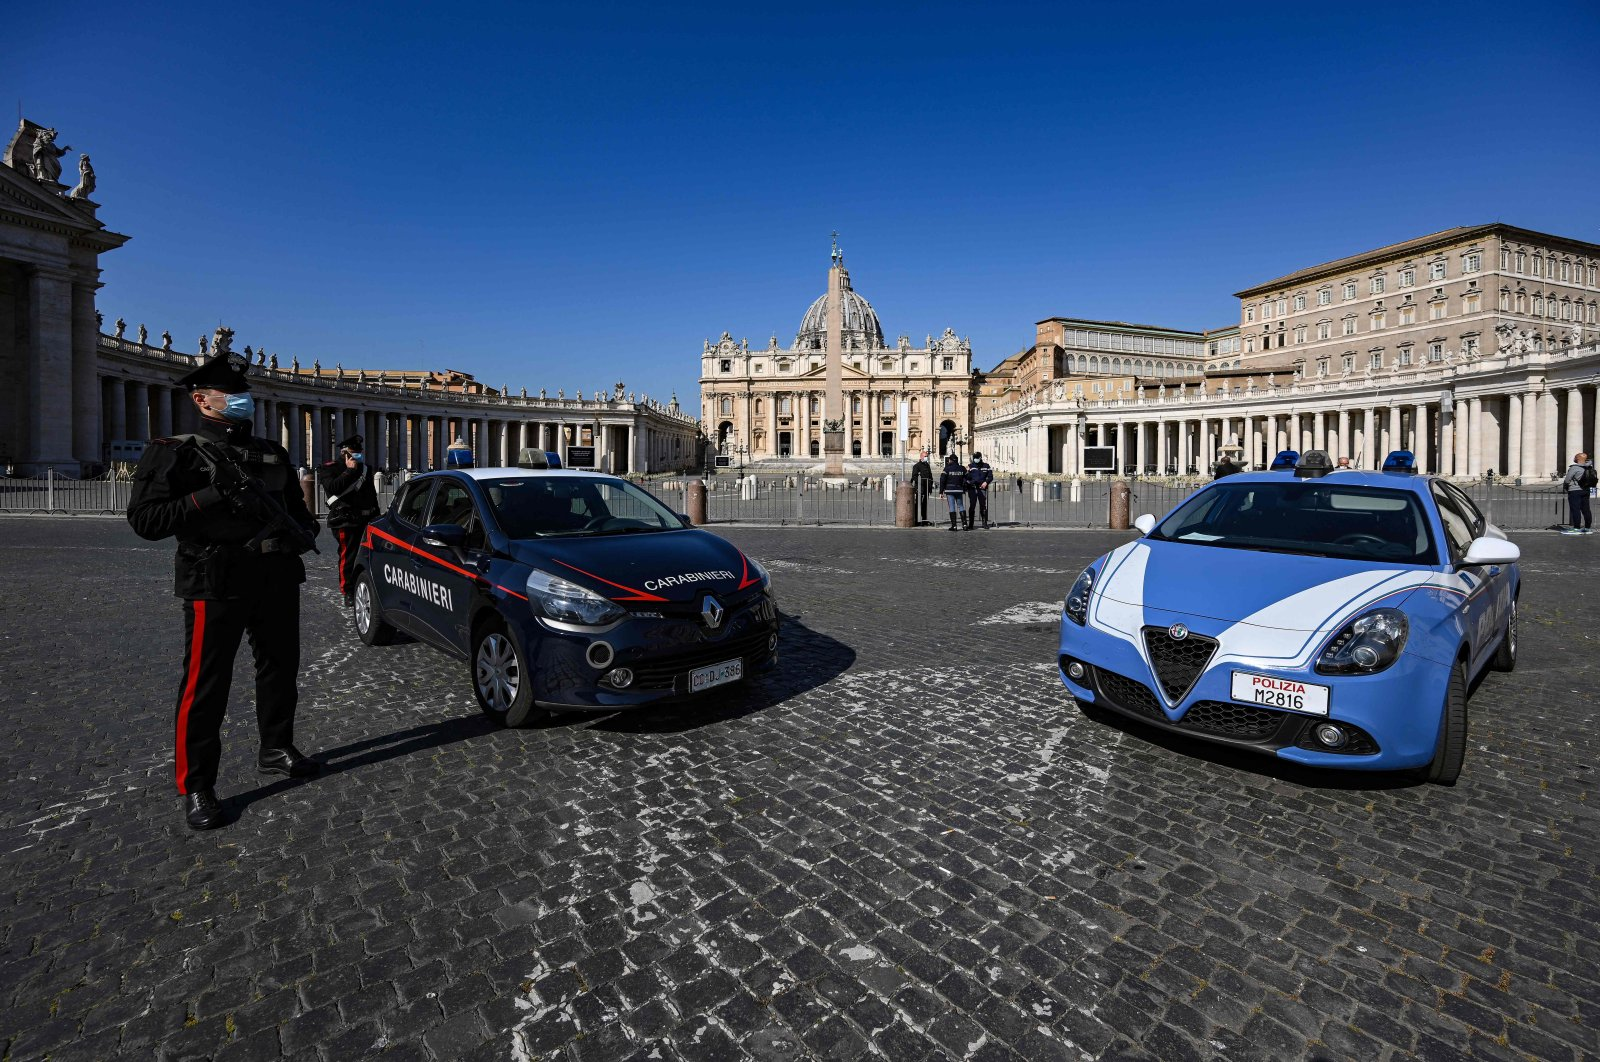 An Italian Carabinieri Police officer (L) stands guard at the limit between Italy in Rome and Saint Peter's Square in The Vatican, with Saint Peter's Basilica in the background, in The Vatican, March 28, 2021. (AFP Photo)